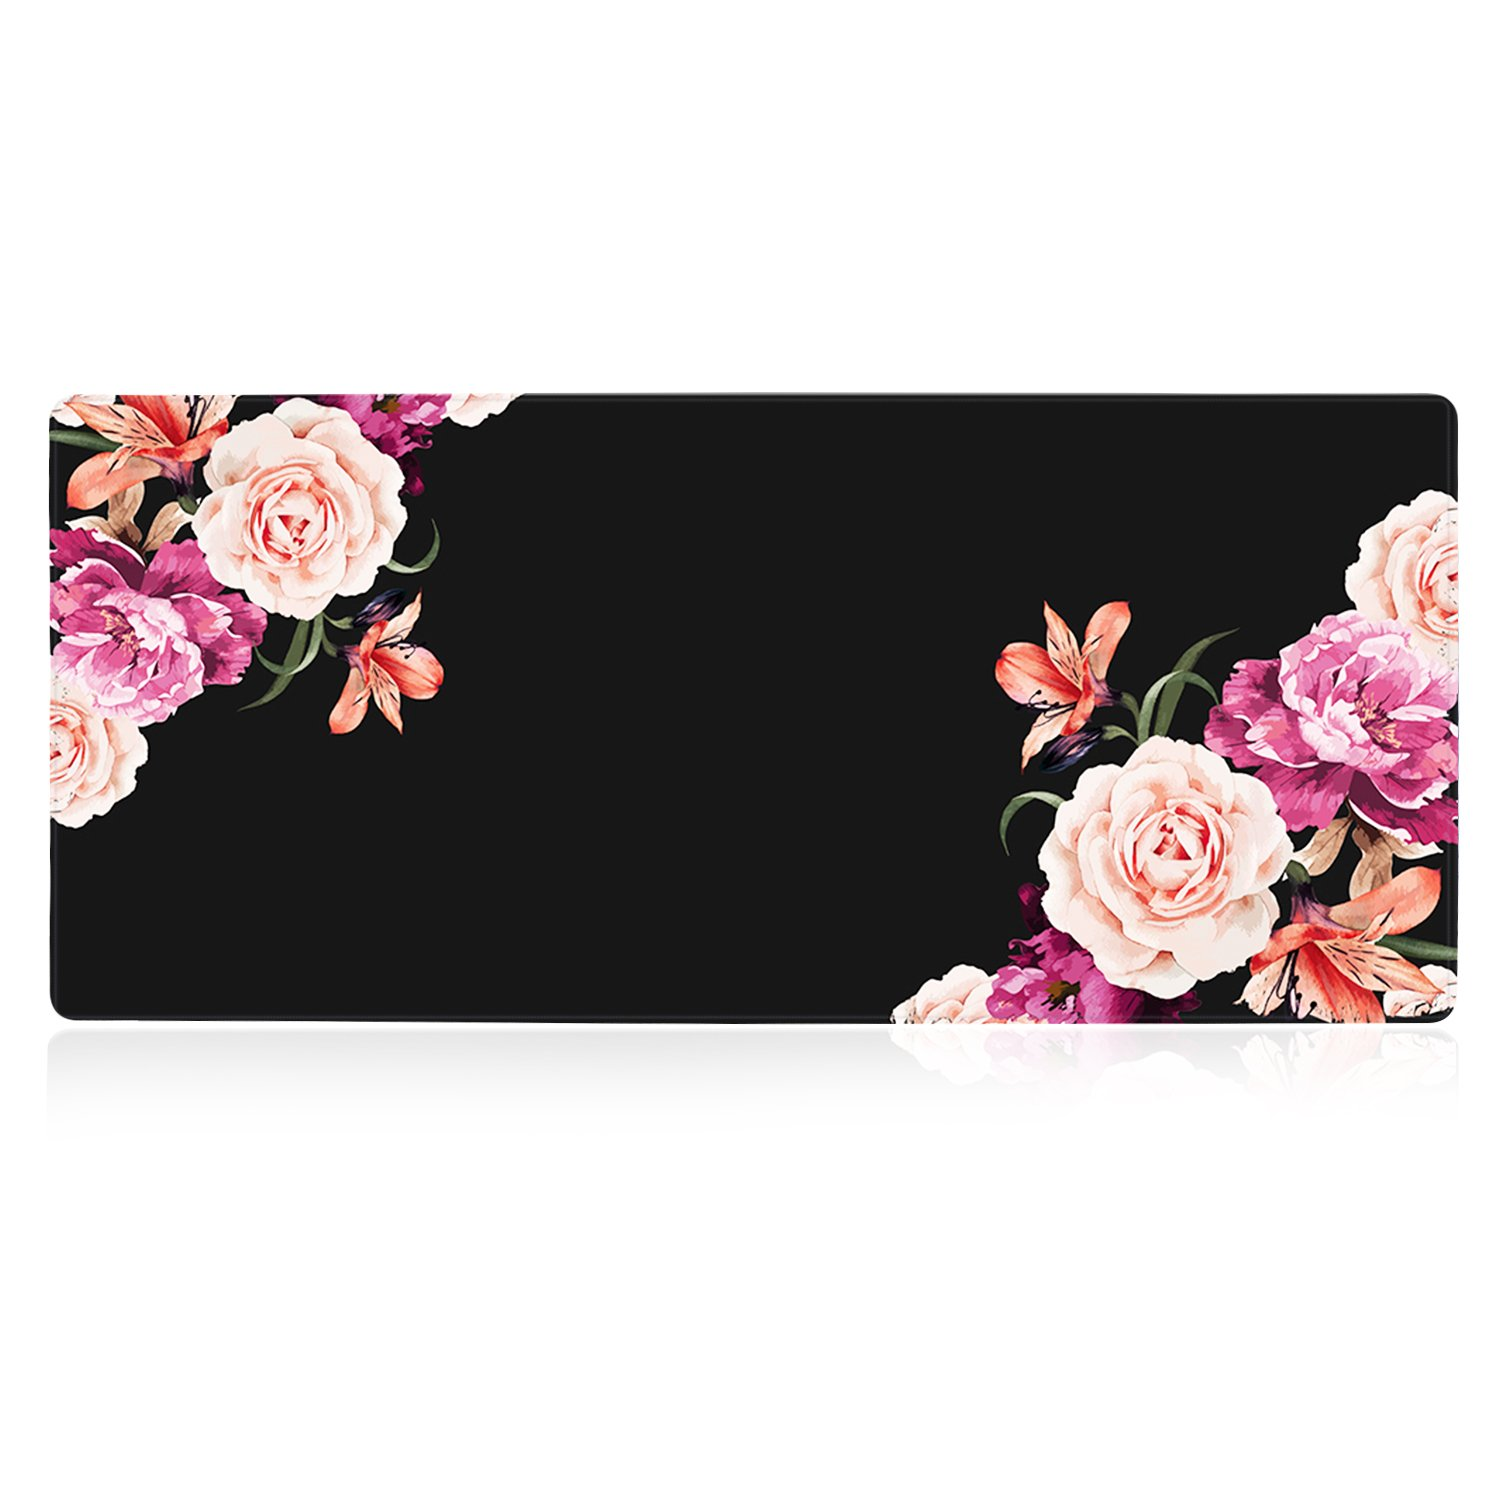 iLeadon Extended Gaming Mouse Pad - Non-Slip Water-Resistant Rubber Base Computer Keyboard Mouse Mat, 35.1 x 15.75-inch 2.5mm Thick XX-Large, Ideal Partner for Work & Game, Peony Flower